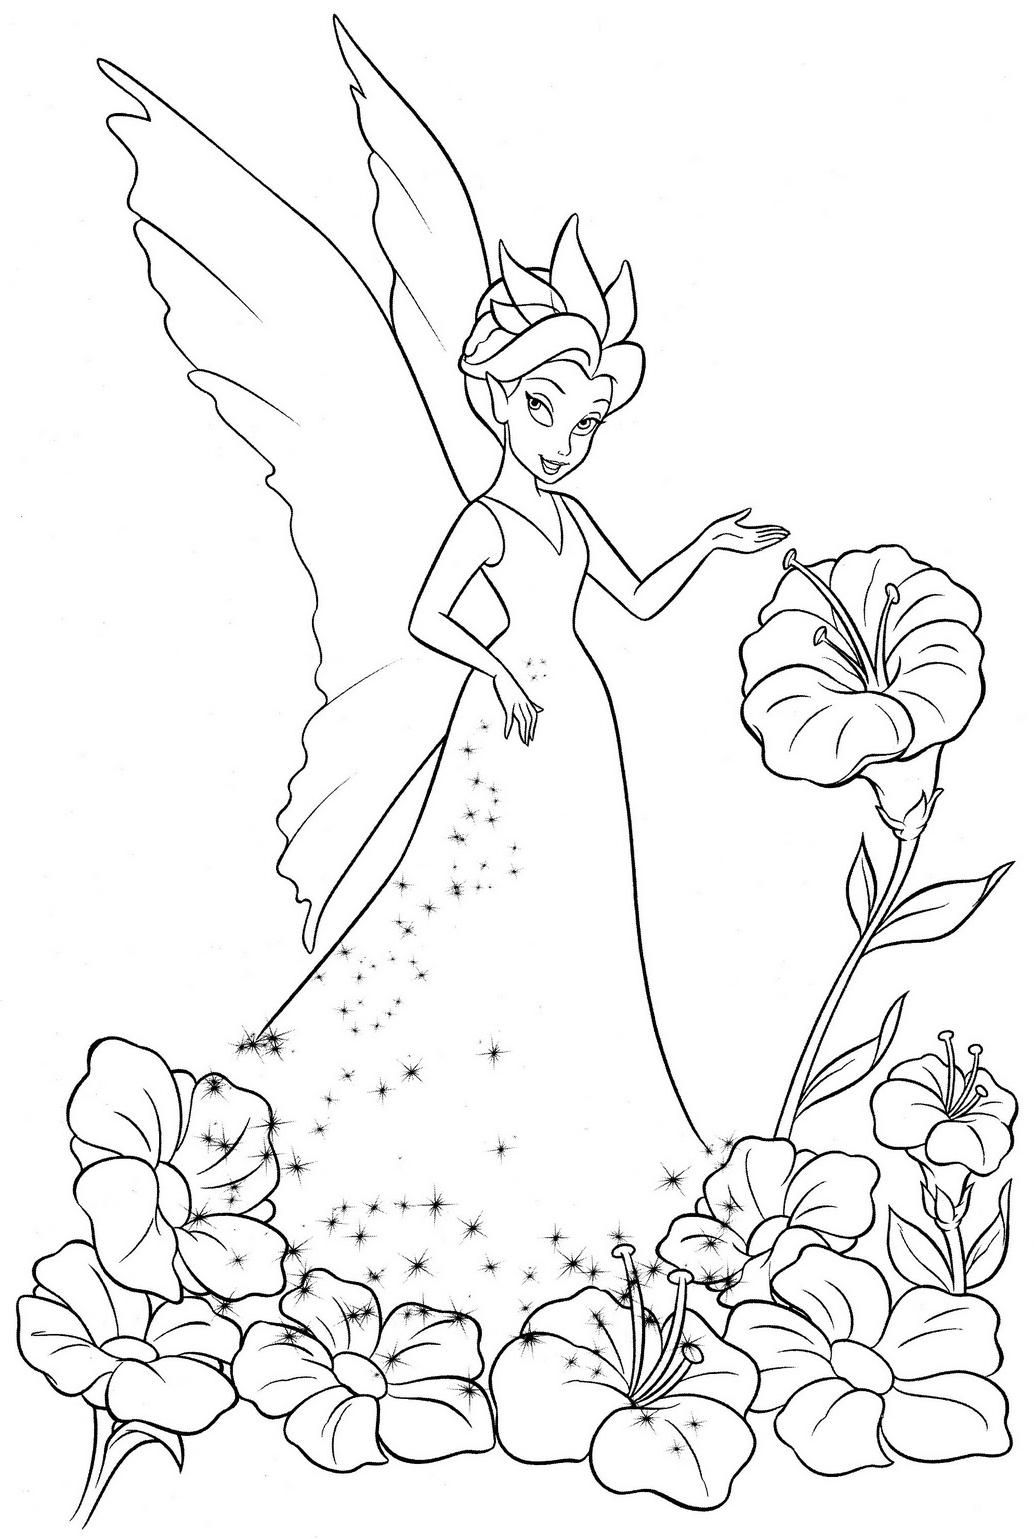 Ausmalbilder Kostenlos Von Tinkerbell : Coloring Pages Of Tinkerbell And Friends Coloring Pages